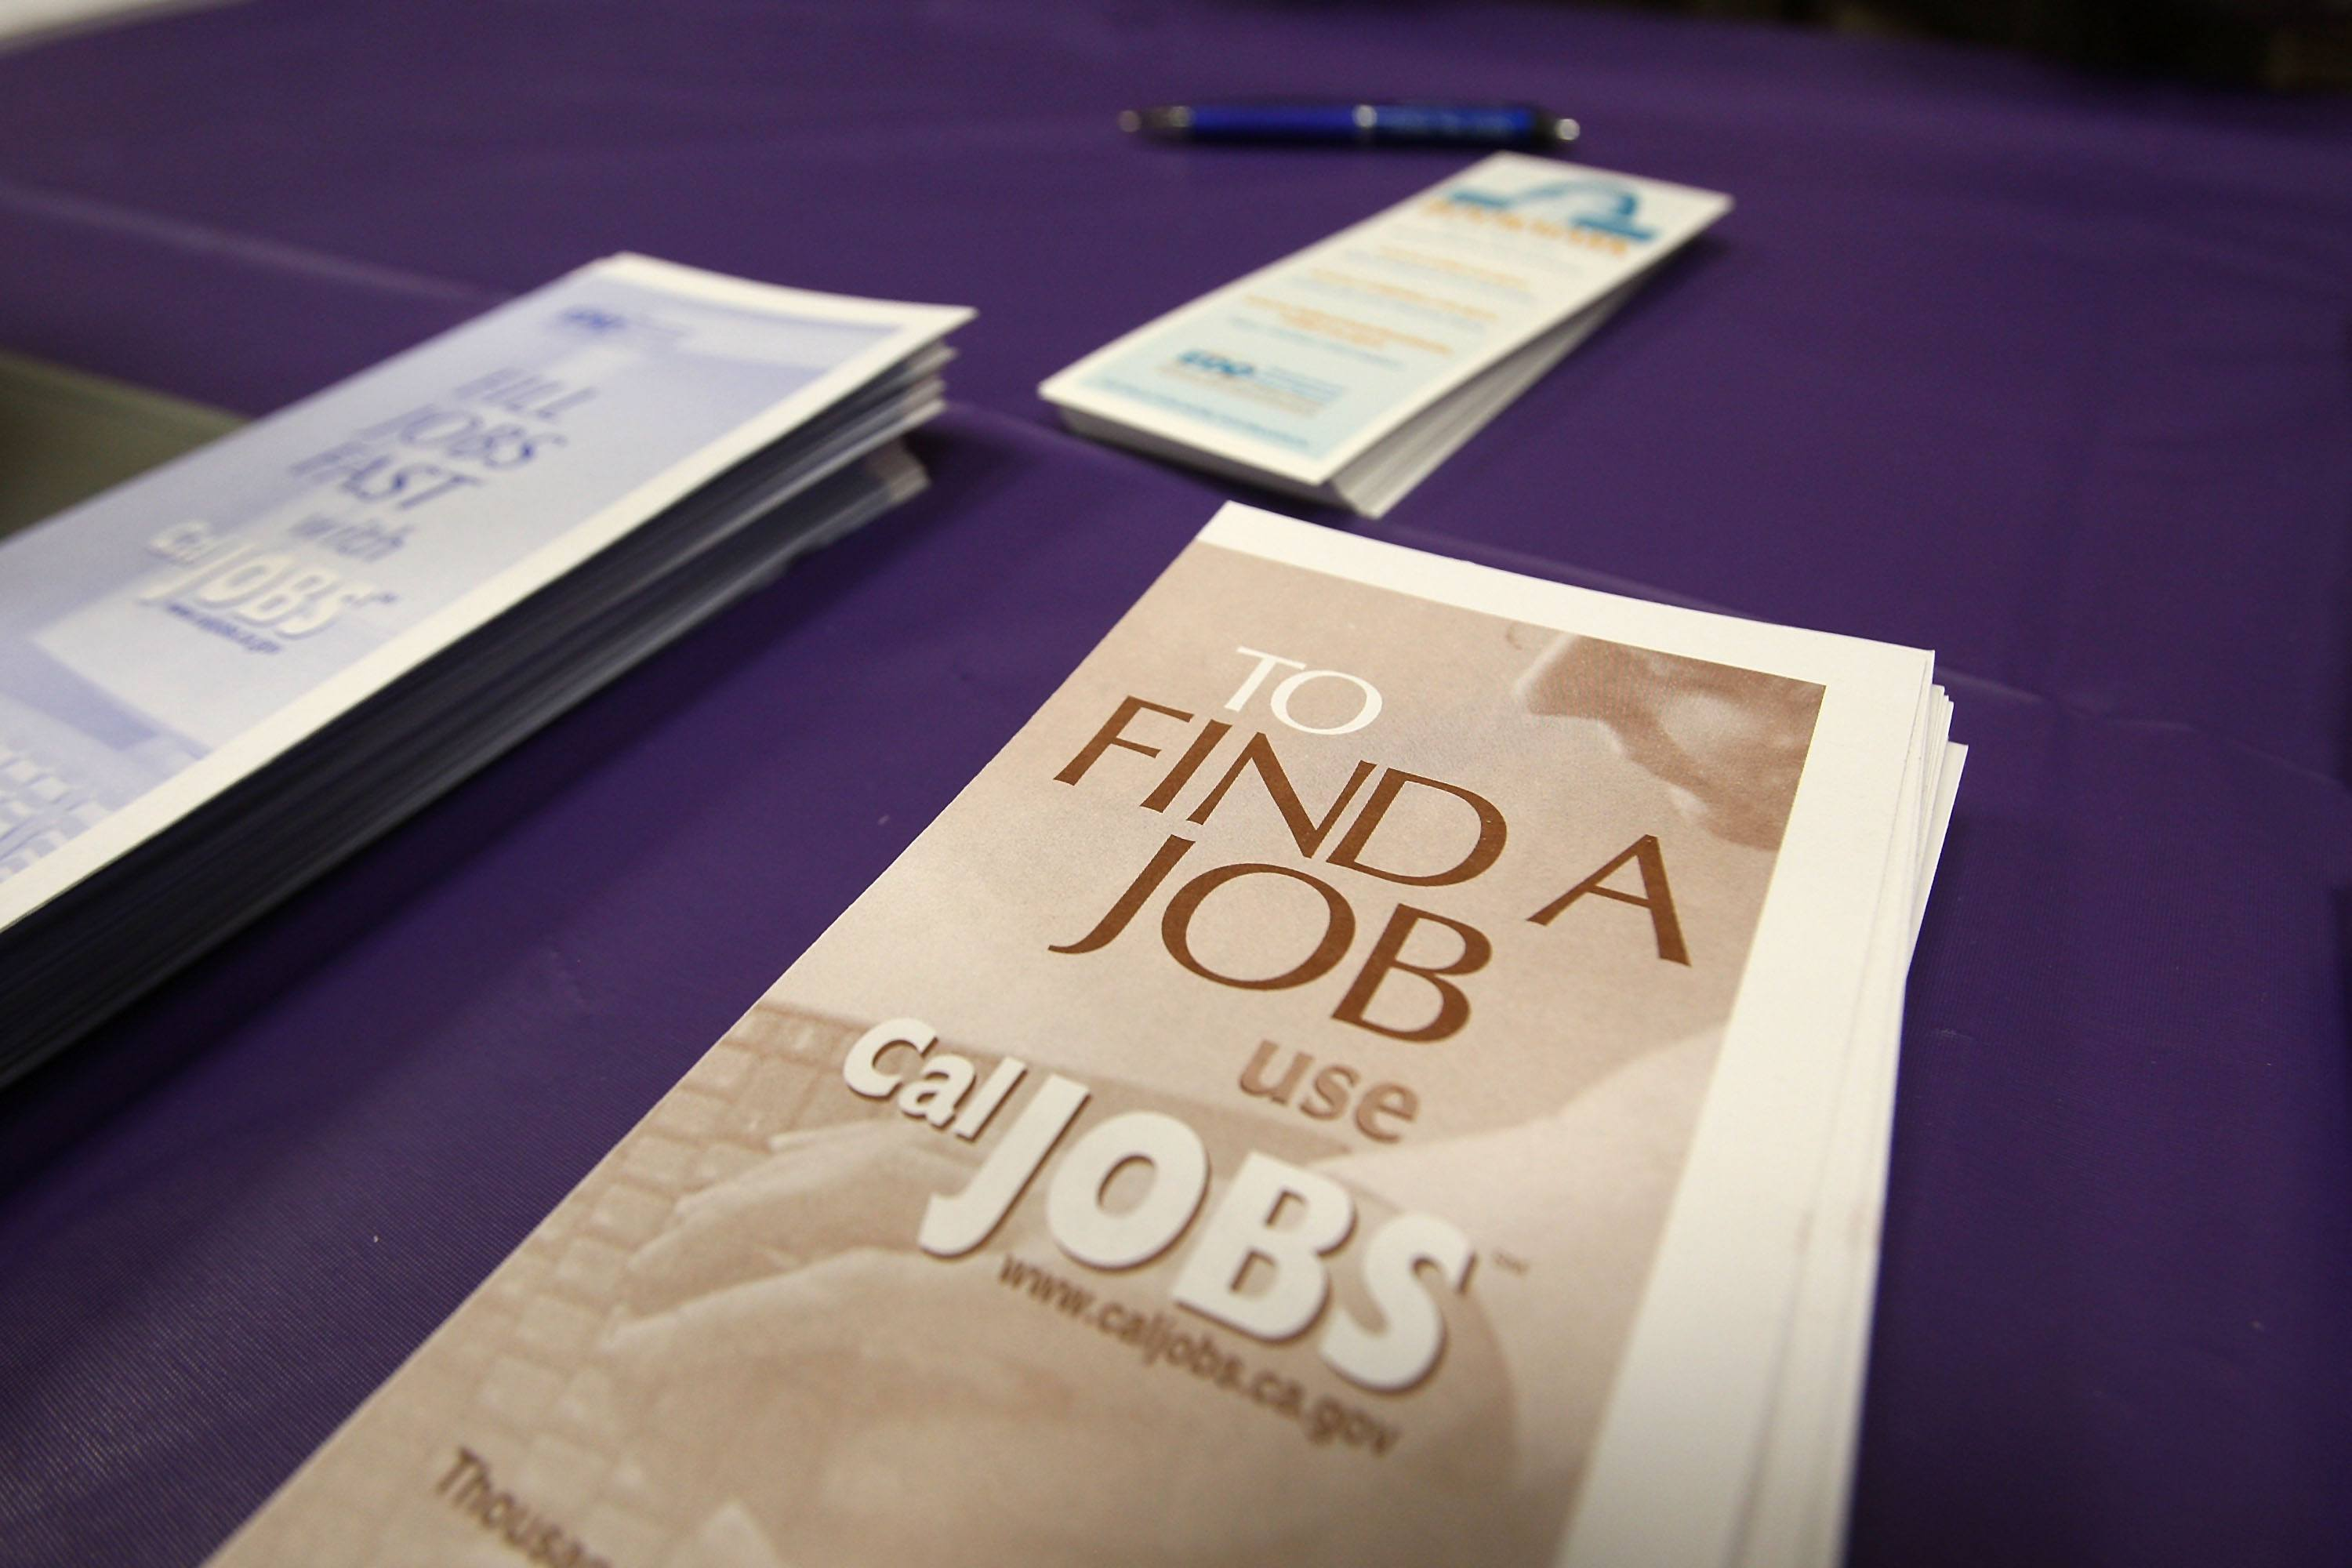 Pamphlets sit on a table during a California job fair